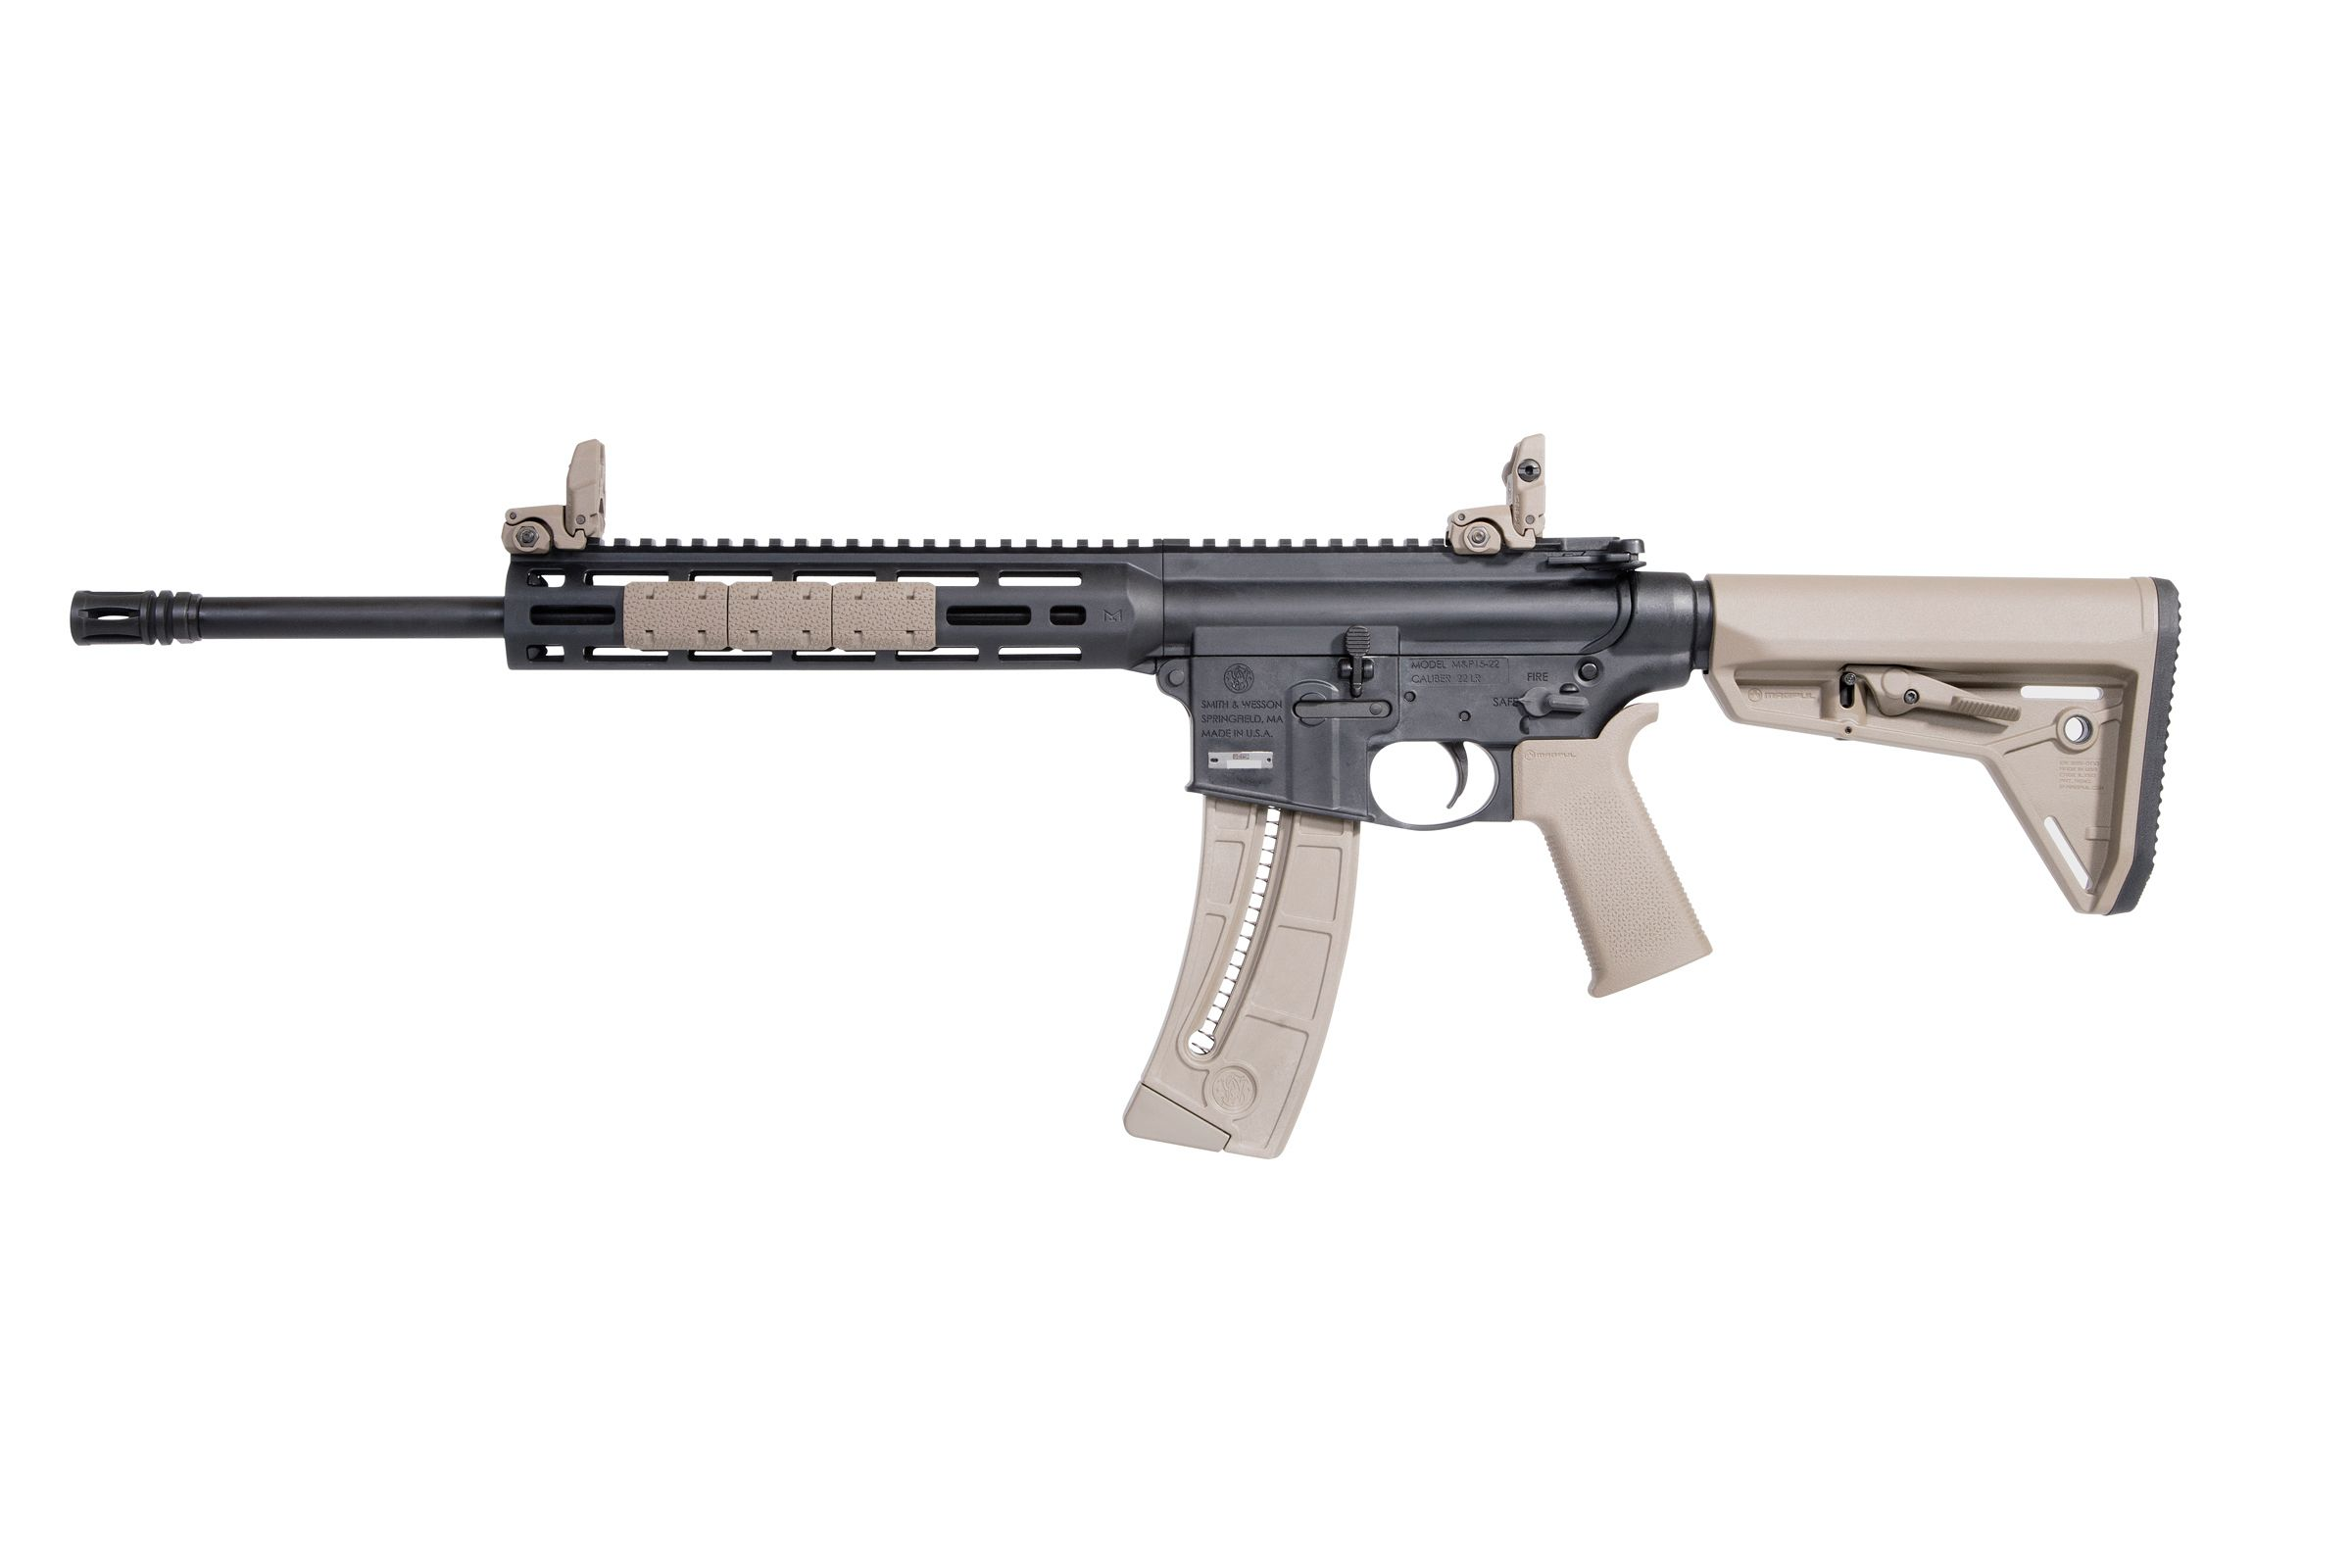 Smith and Wesson M&P15-22 Sport MOE SL FDE, Black Rifle 16 5″ 22 LR 25 RD  M-LOK 10210